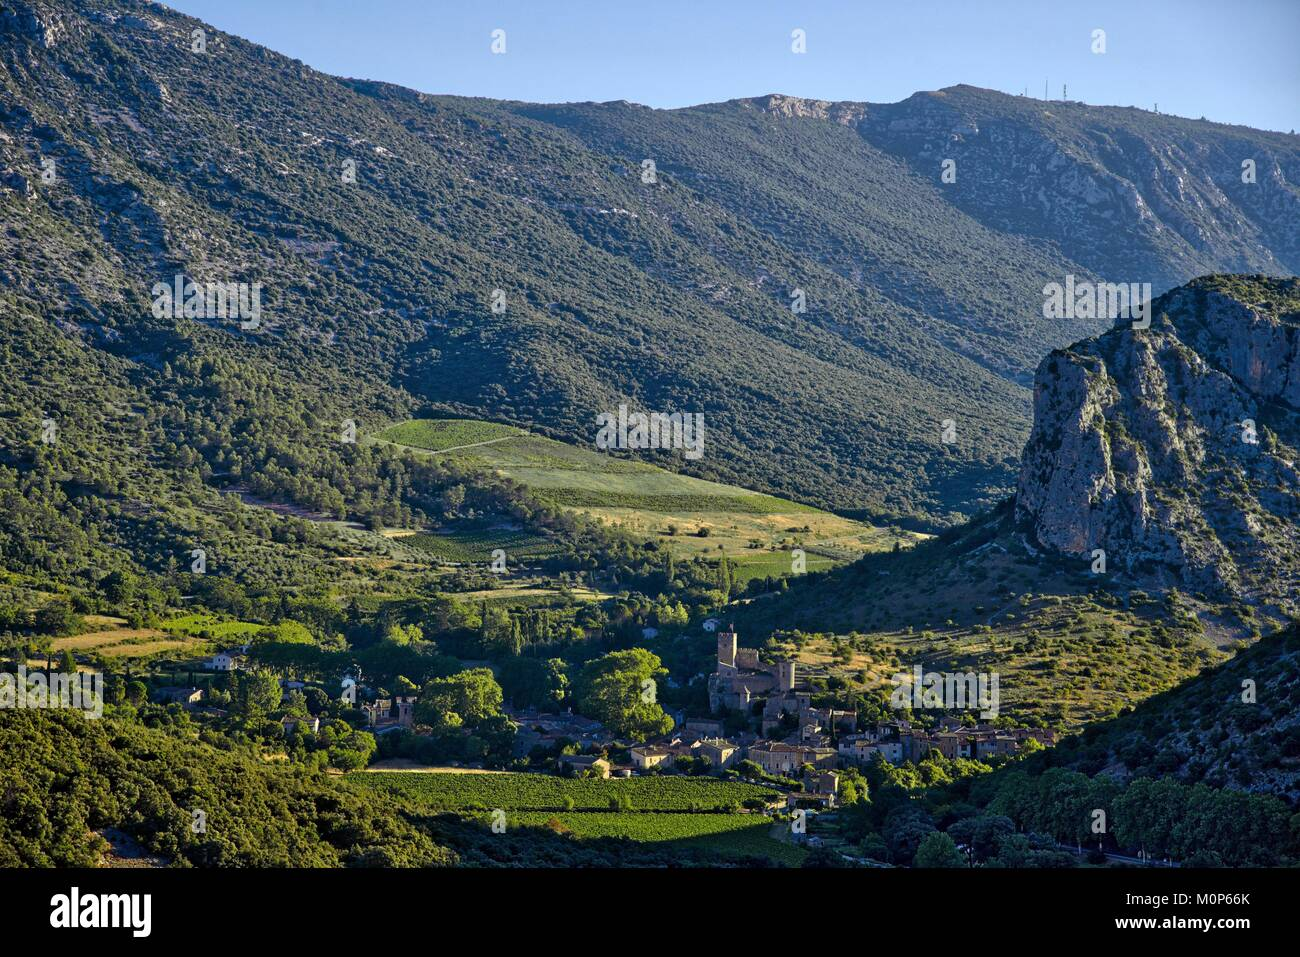 France,Herault,Saint Jean de Bueges,Medieval village at the foot of the mountain of Seranne - Stock Image